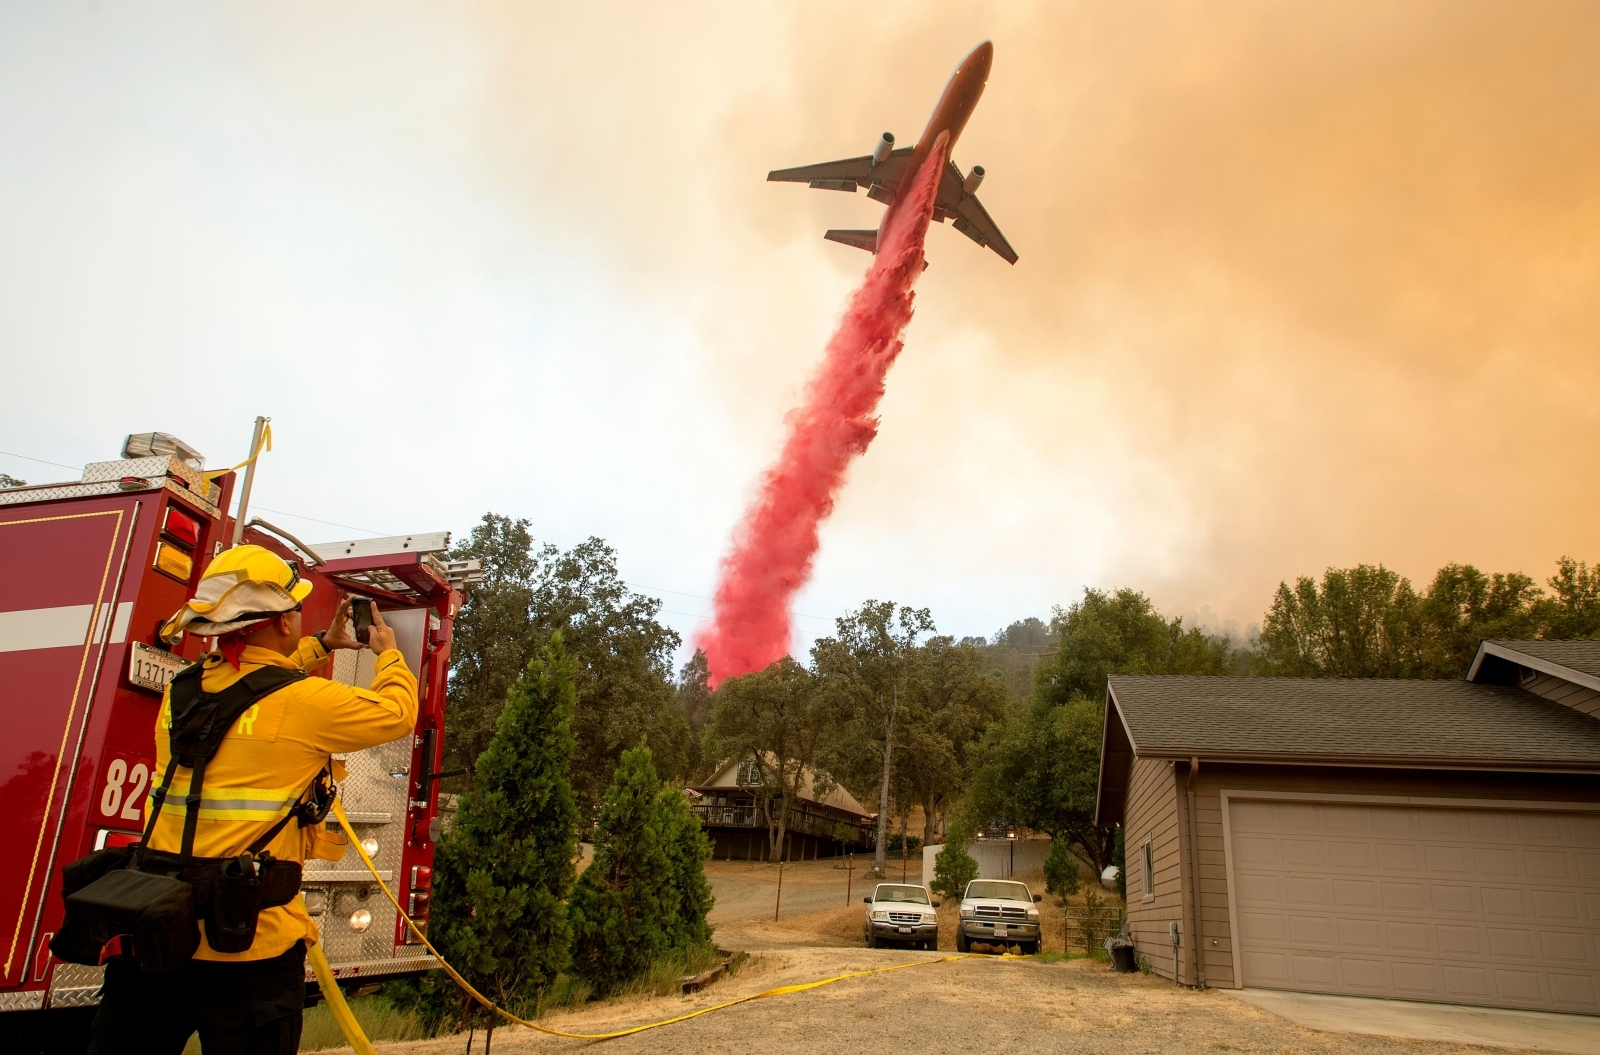 Pictures of the Year 2017 disasters